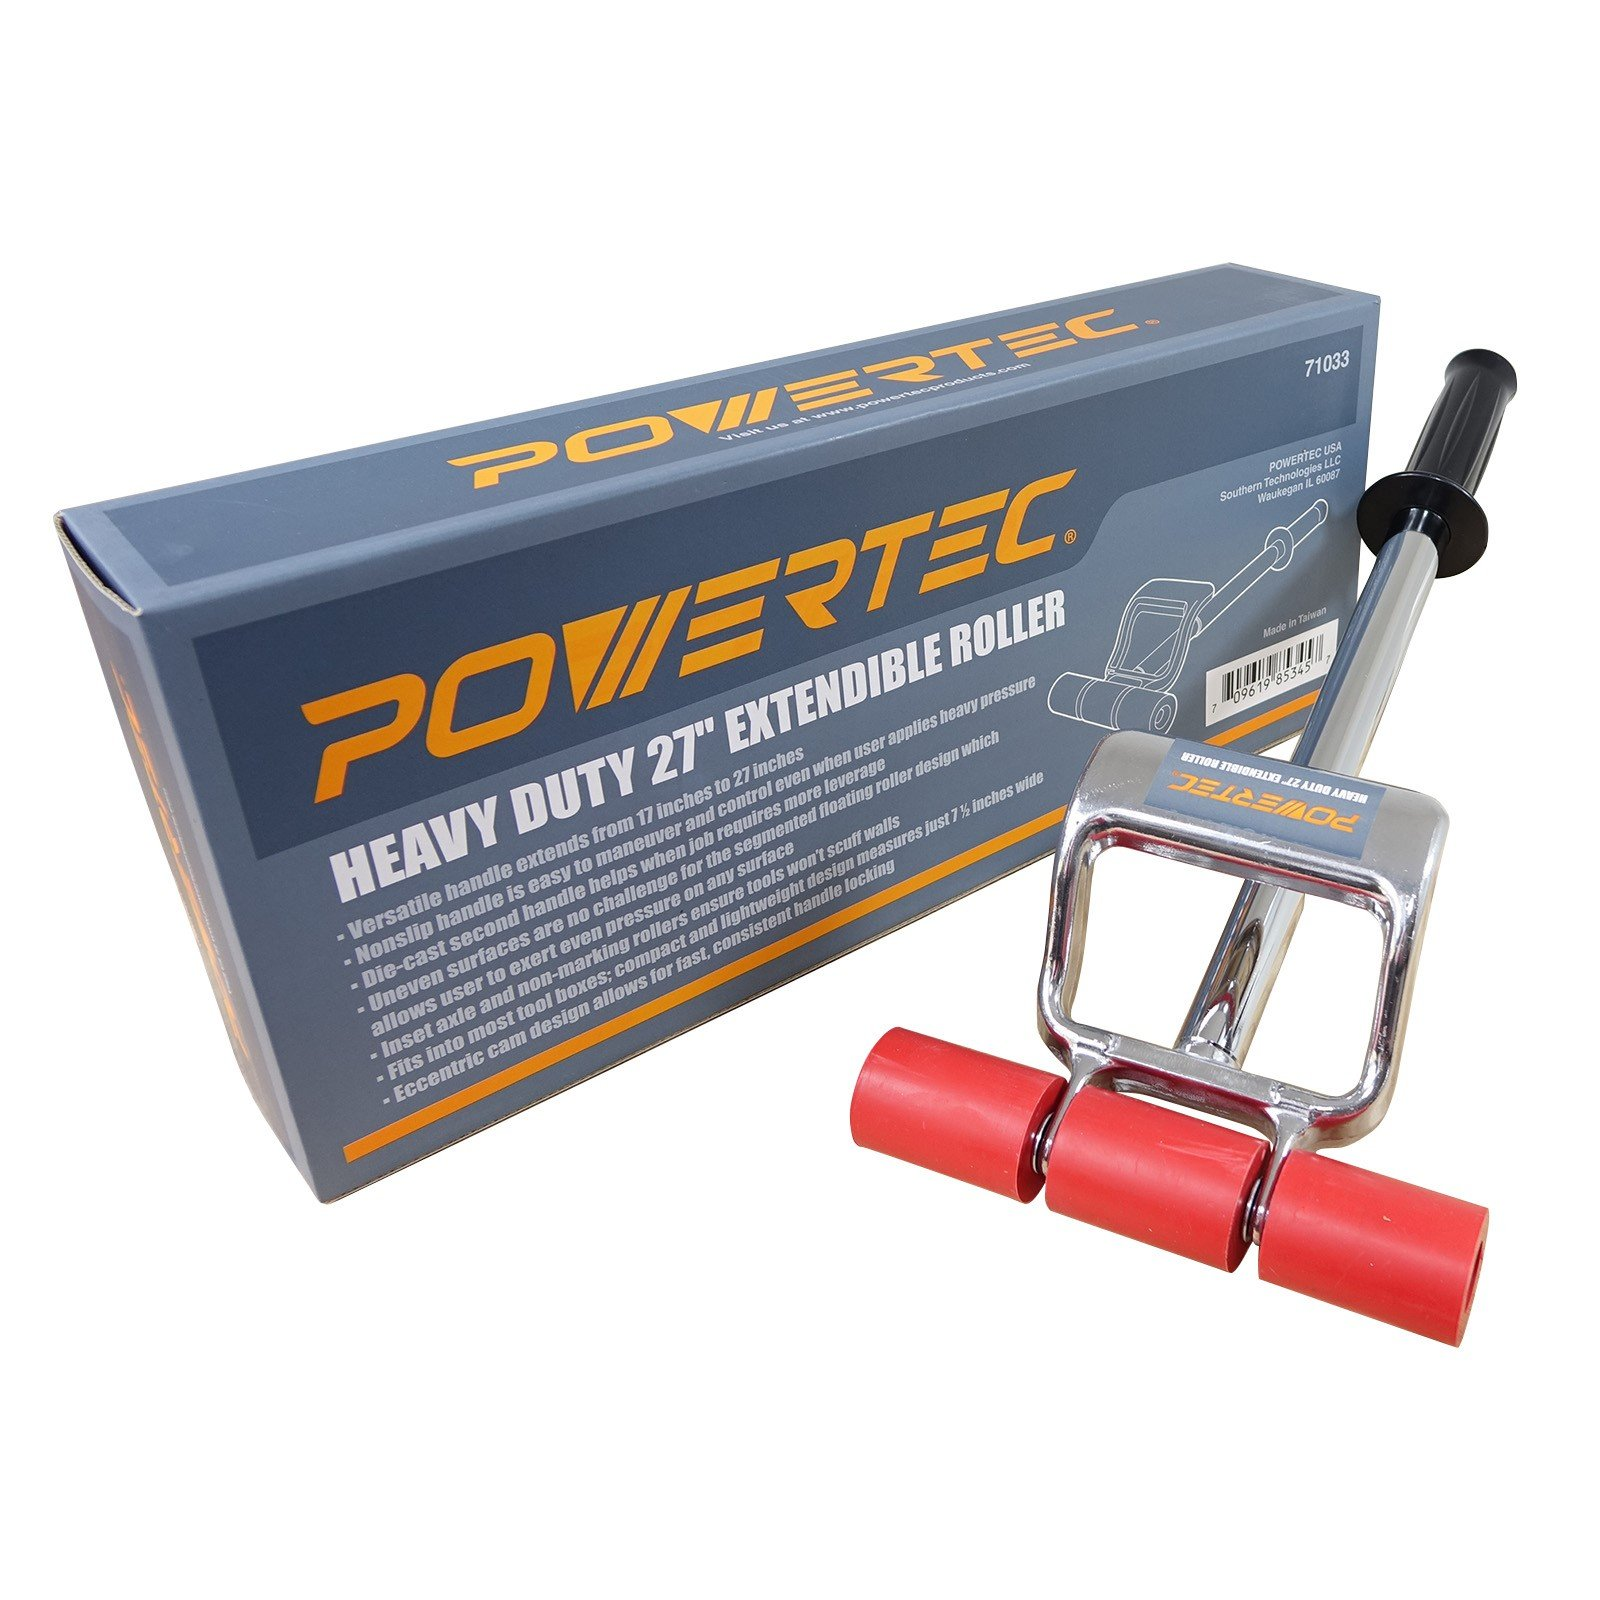 POWERTEC 71033 Heavy Duty 27-Inch Extendable Roller | Die-Cast Second Handle for More Leverage by POWERTEC